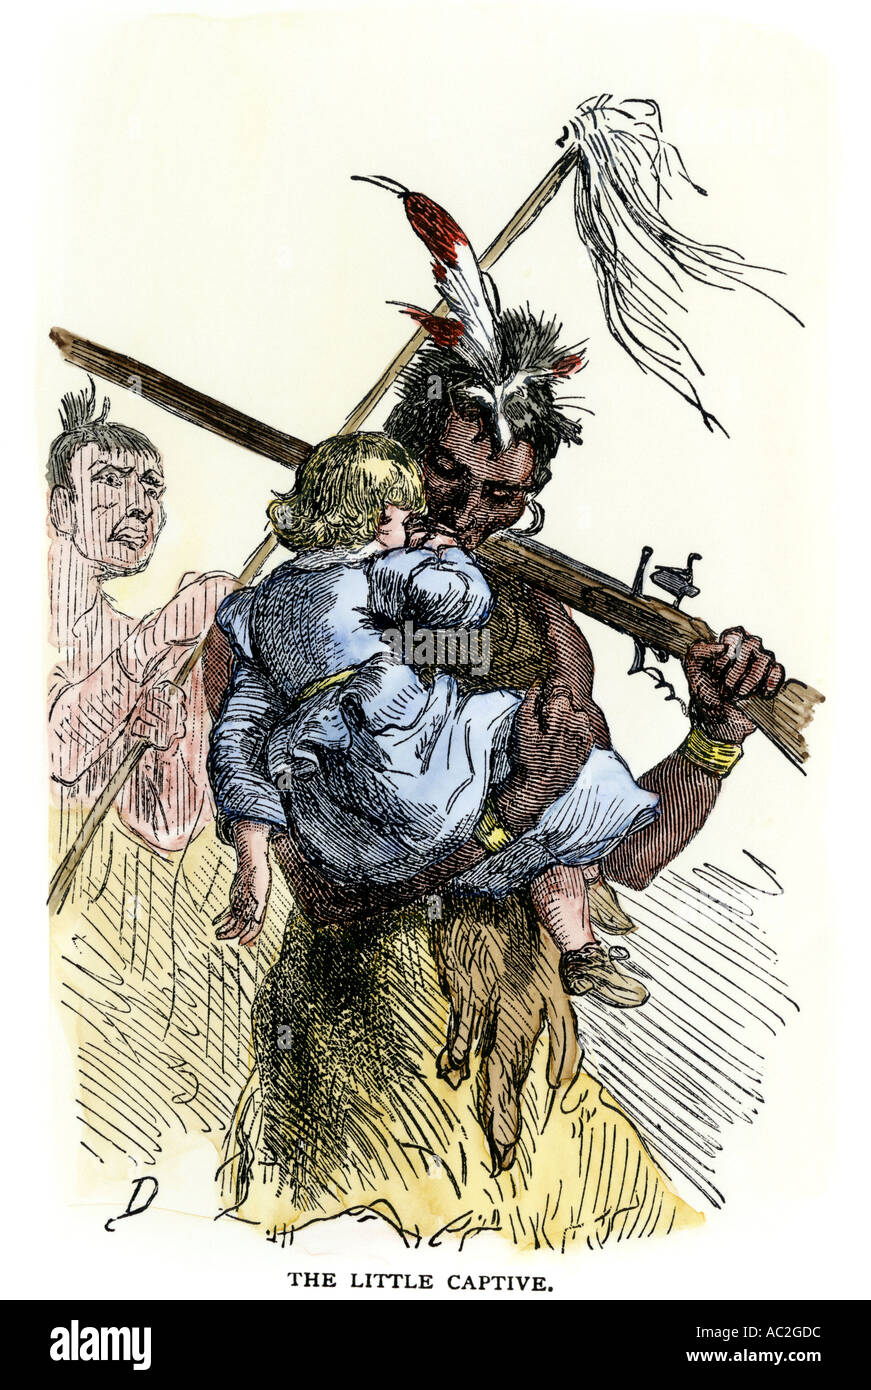 White child carried away during Native American conflict with settlers. Hand-colored woodcut - Stock Image